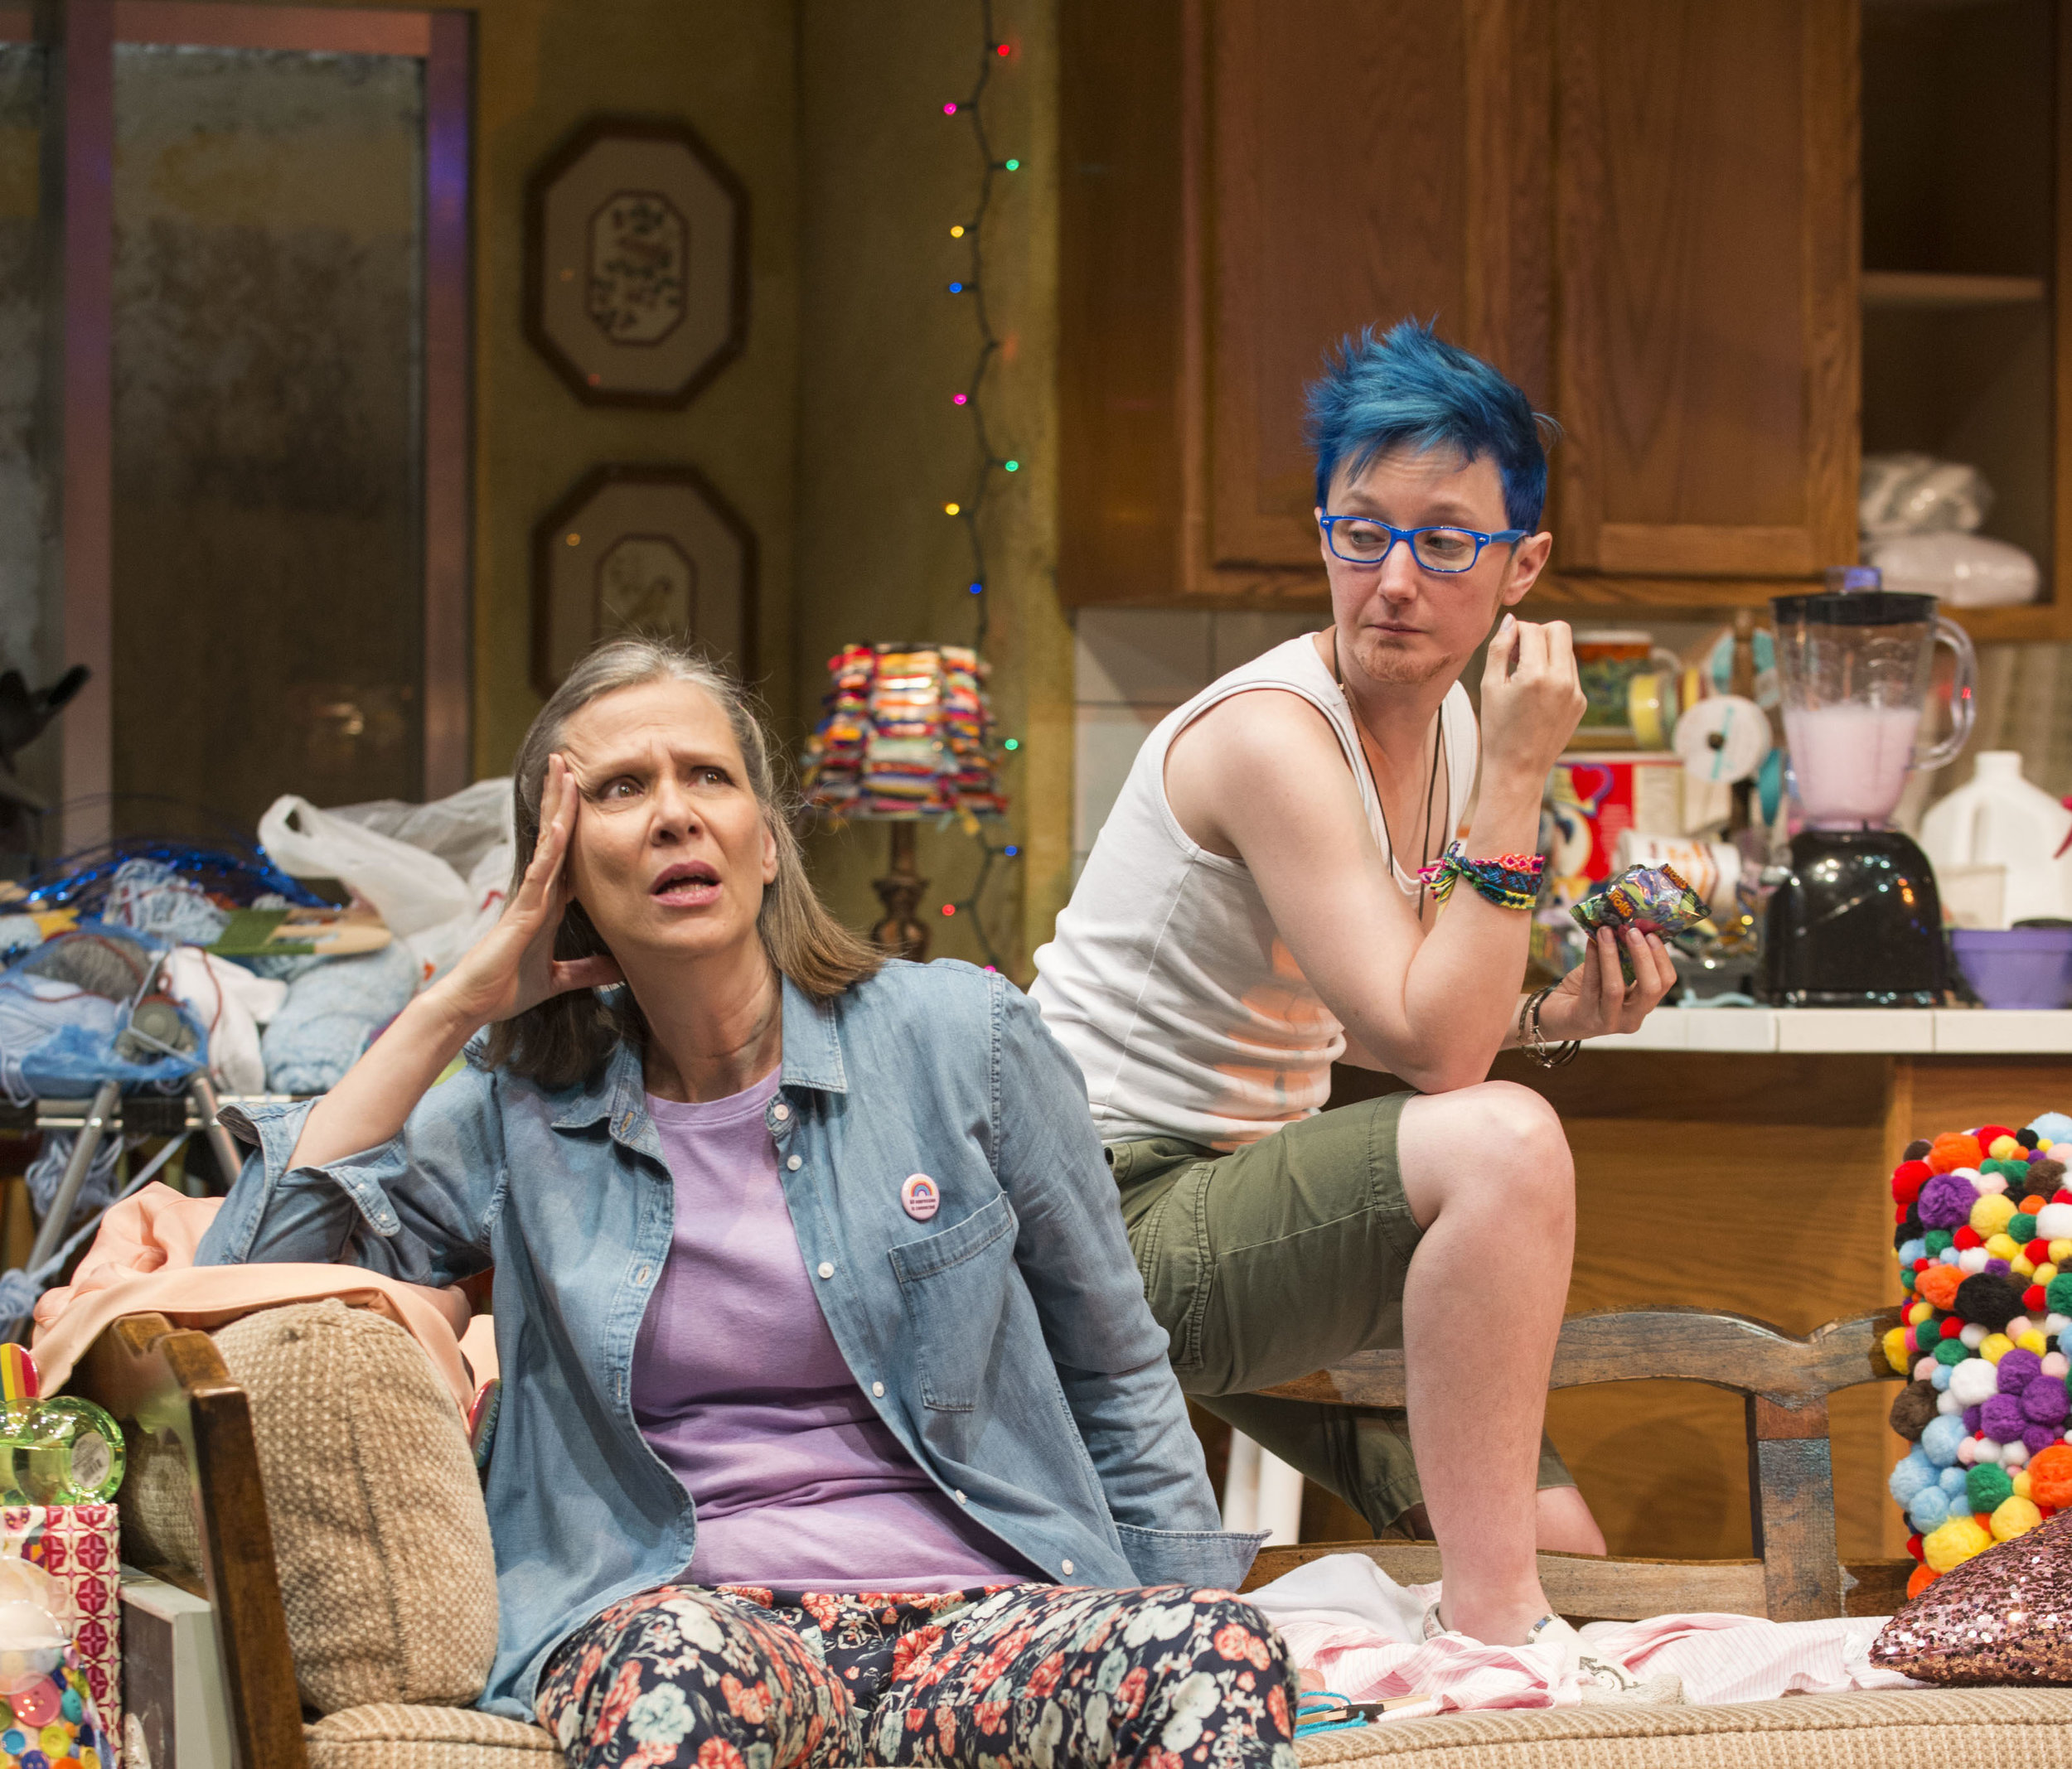 Pictured (left to right) Ensemble member Amy Morton (Paige) and Em Grosland (Max) in Steppenwolf's Chicago premiere production of Hir, written by Taylor Mac and directed by Hallie Gordon.Photo by Michael Brosilow.